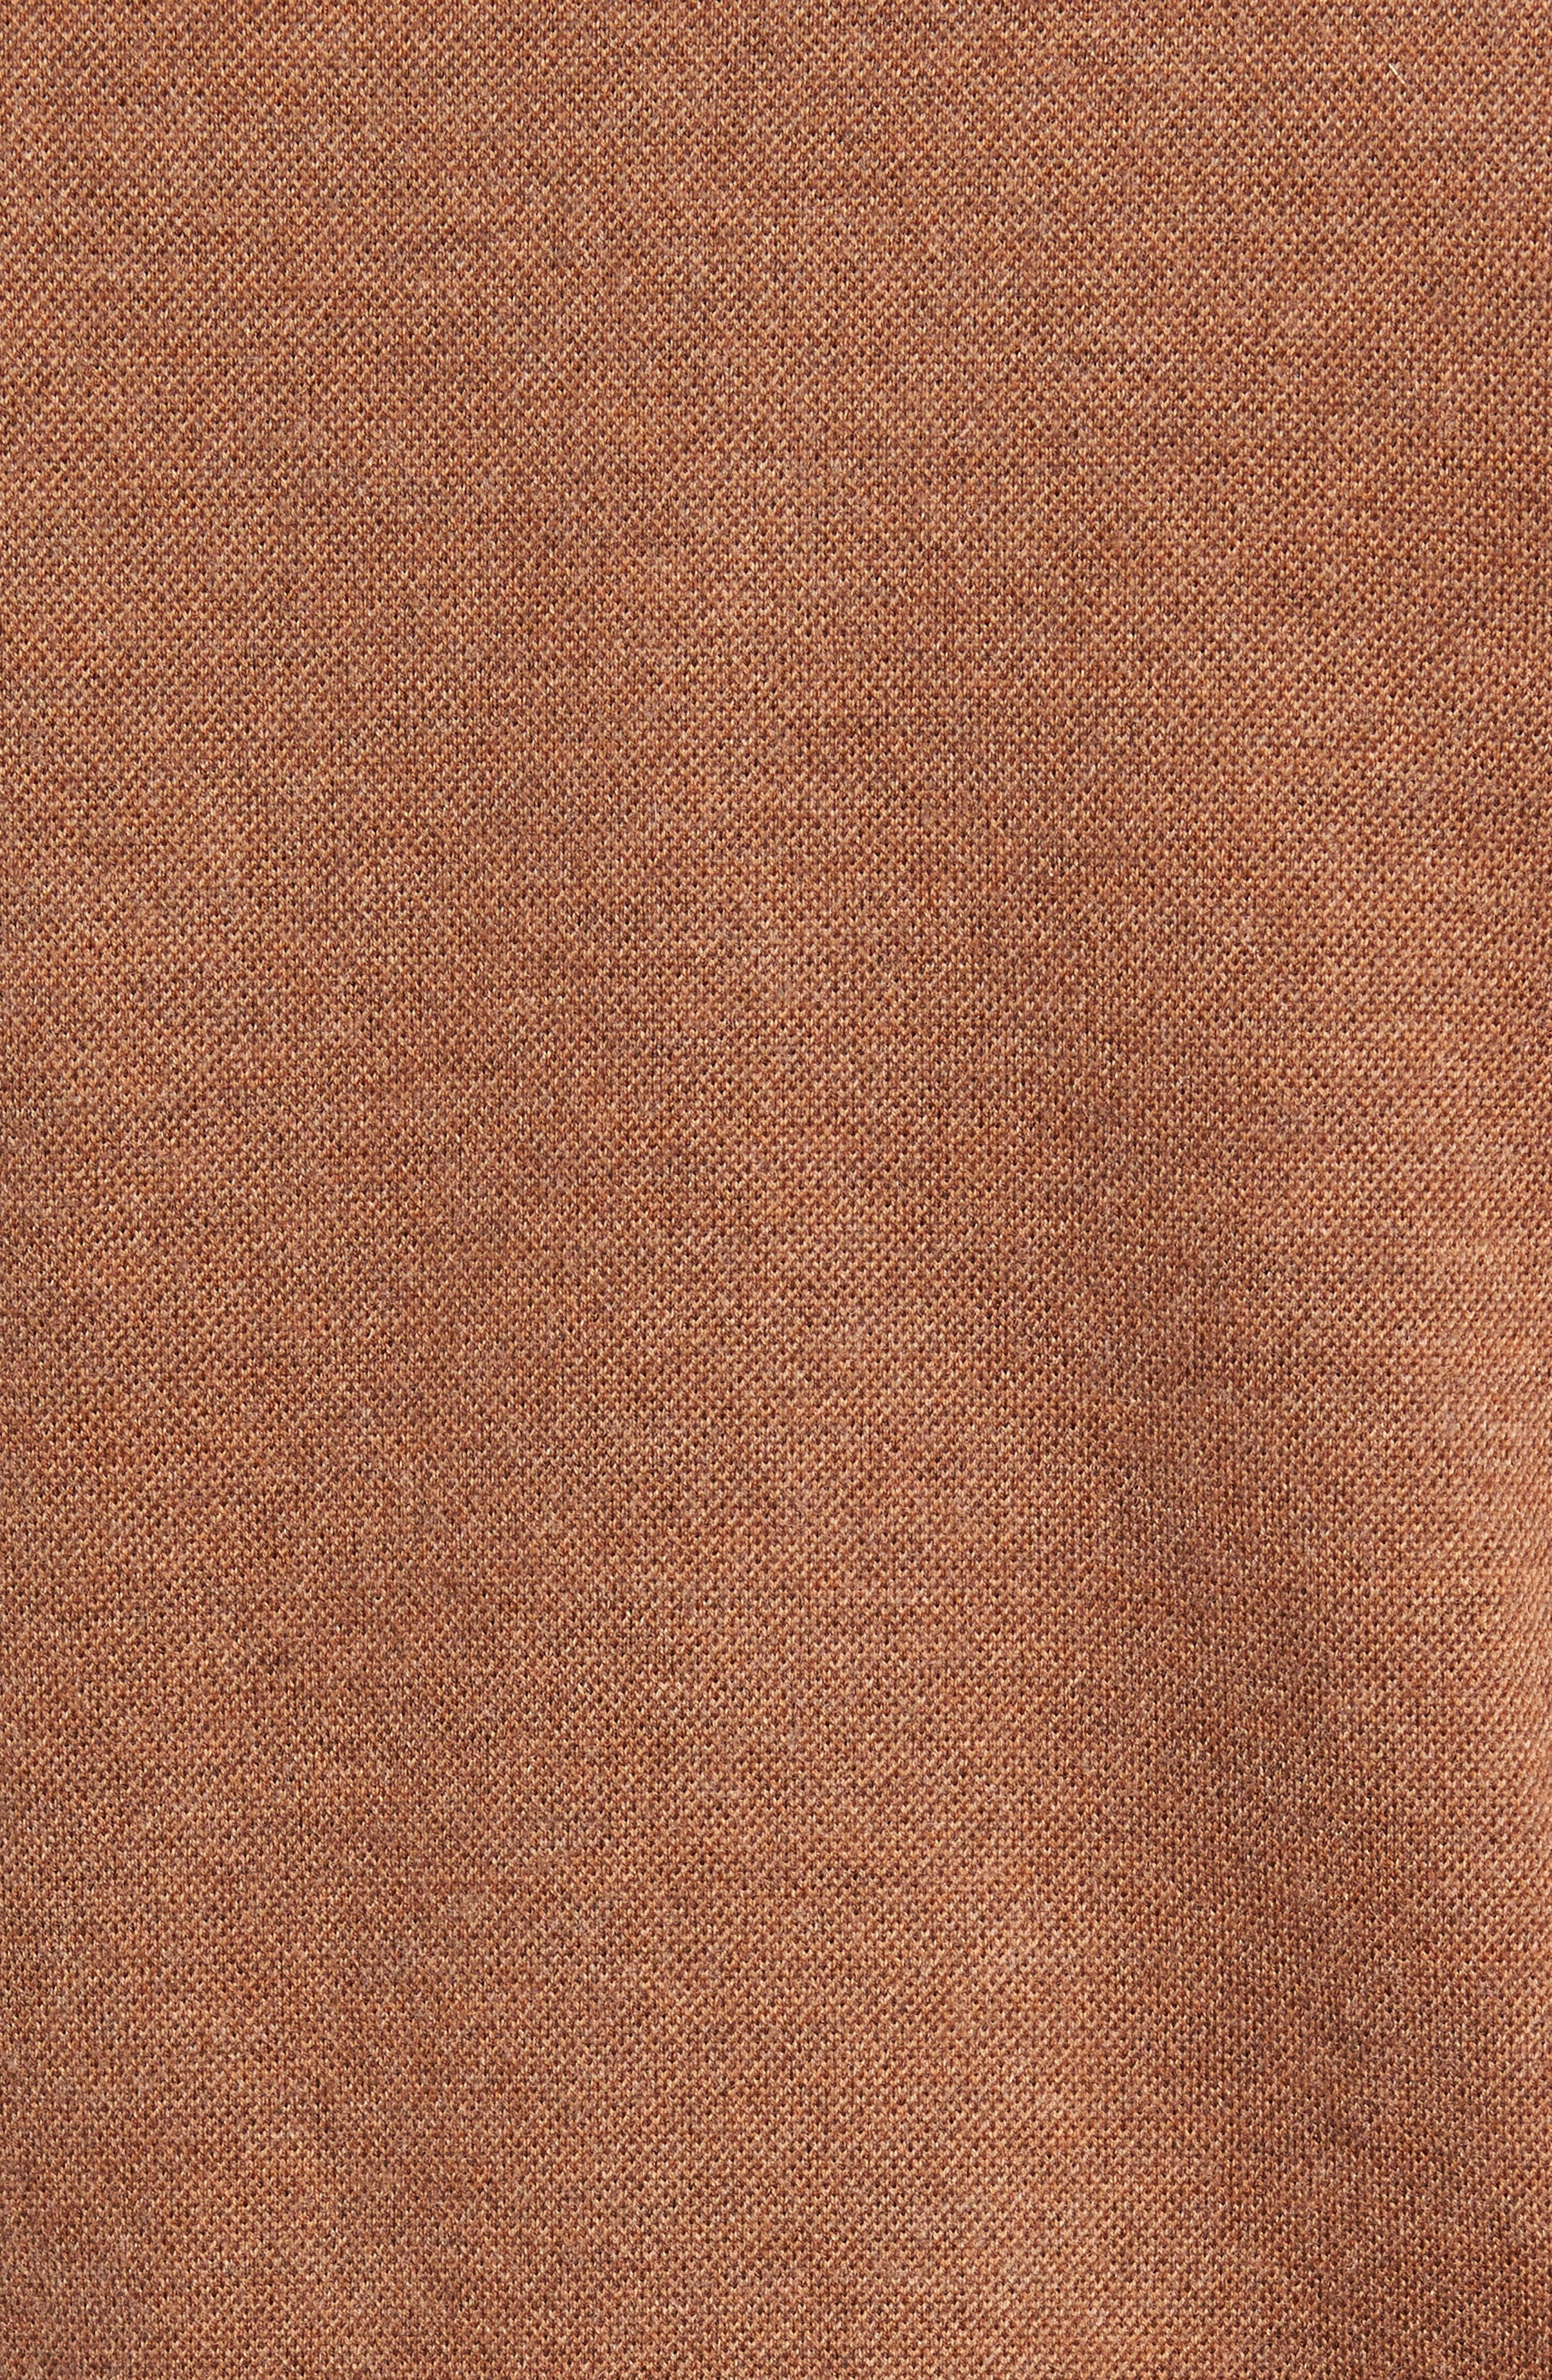 English Manor Cardigan,                             Alternate thumbnail 5, color,                             VICUNA